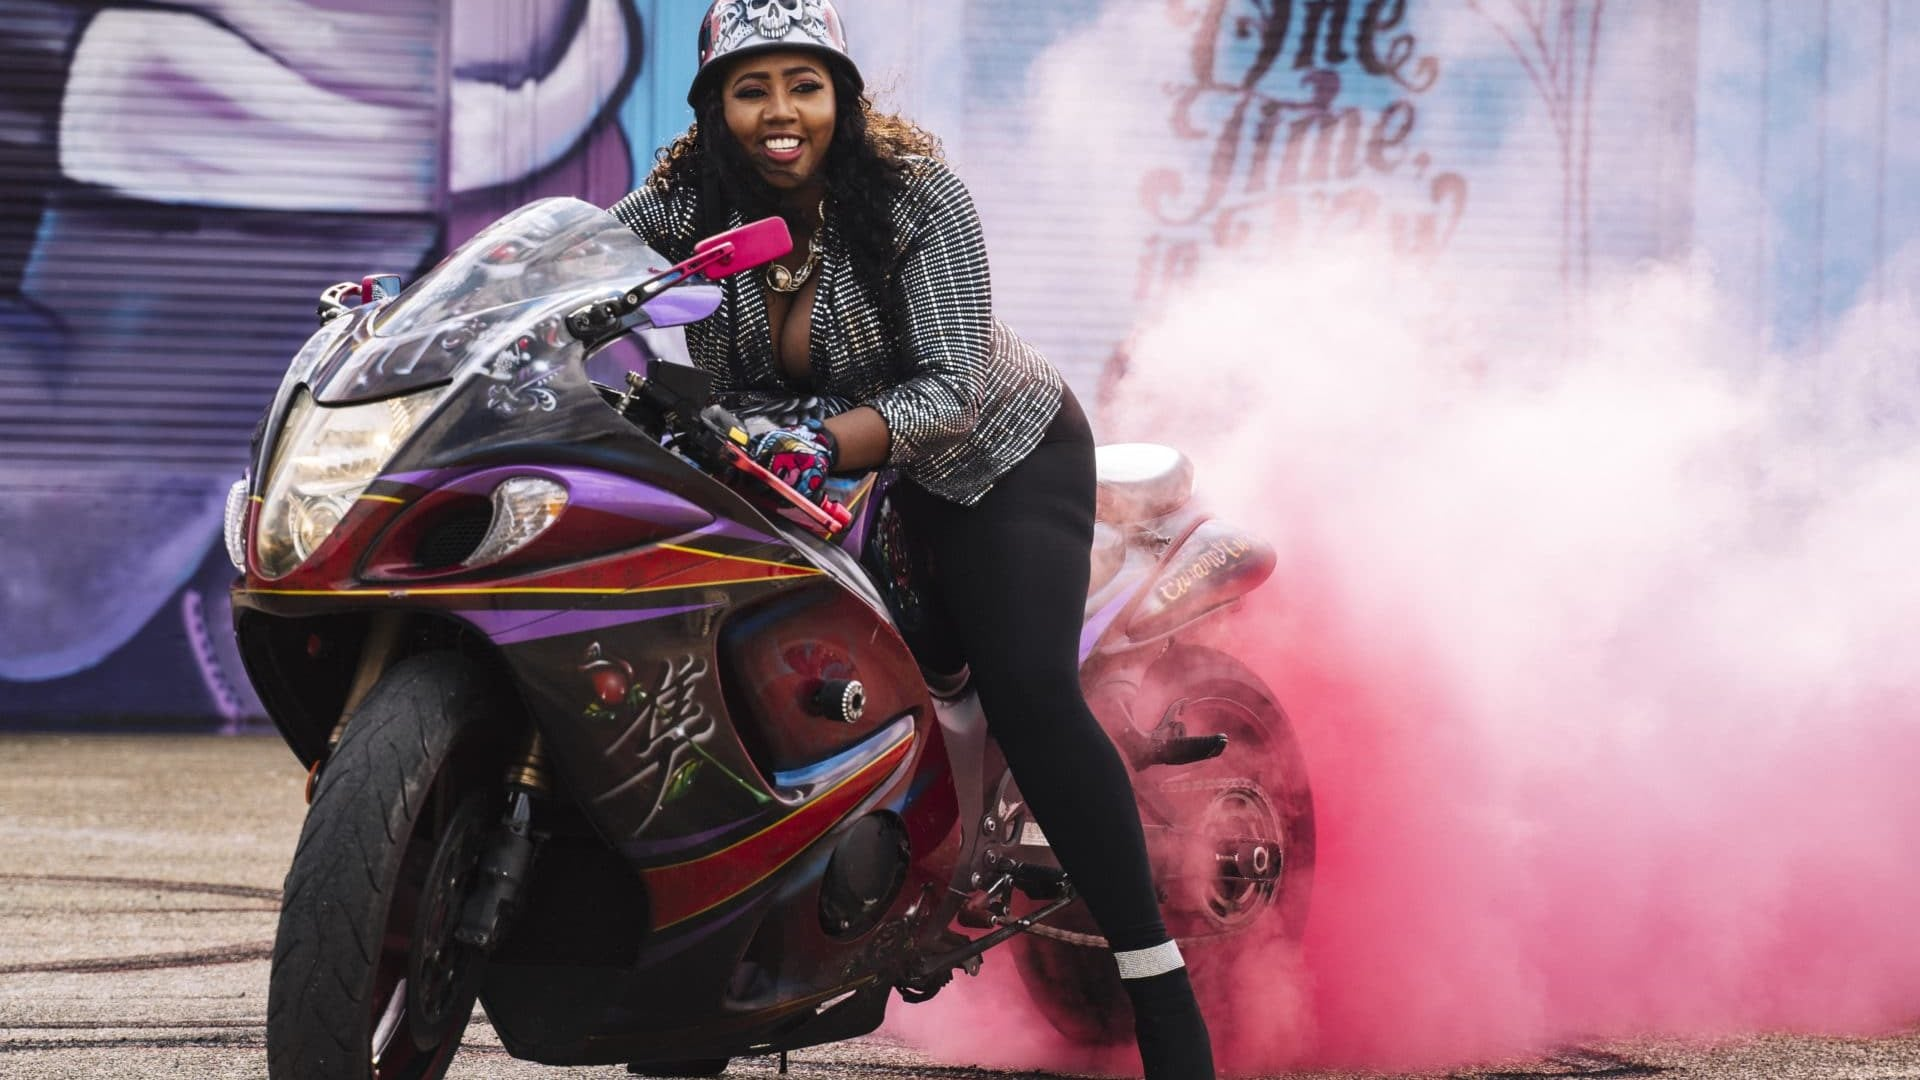 Meet The Caramel Curves: New Orleans's All-Female Biker Club Is Full Of Black Girl Magic